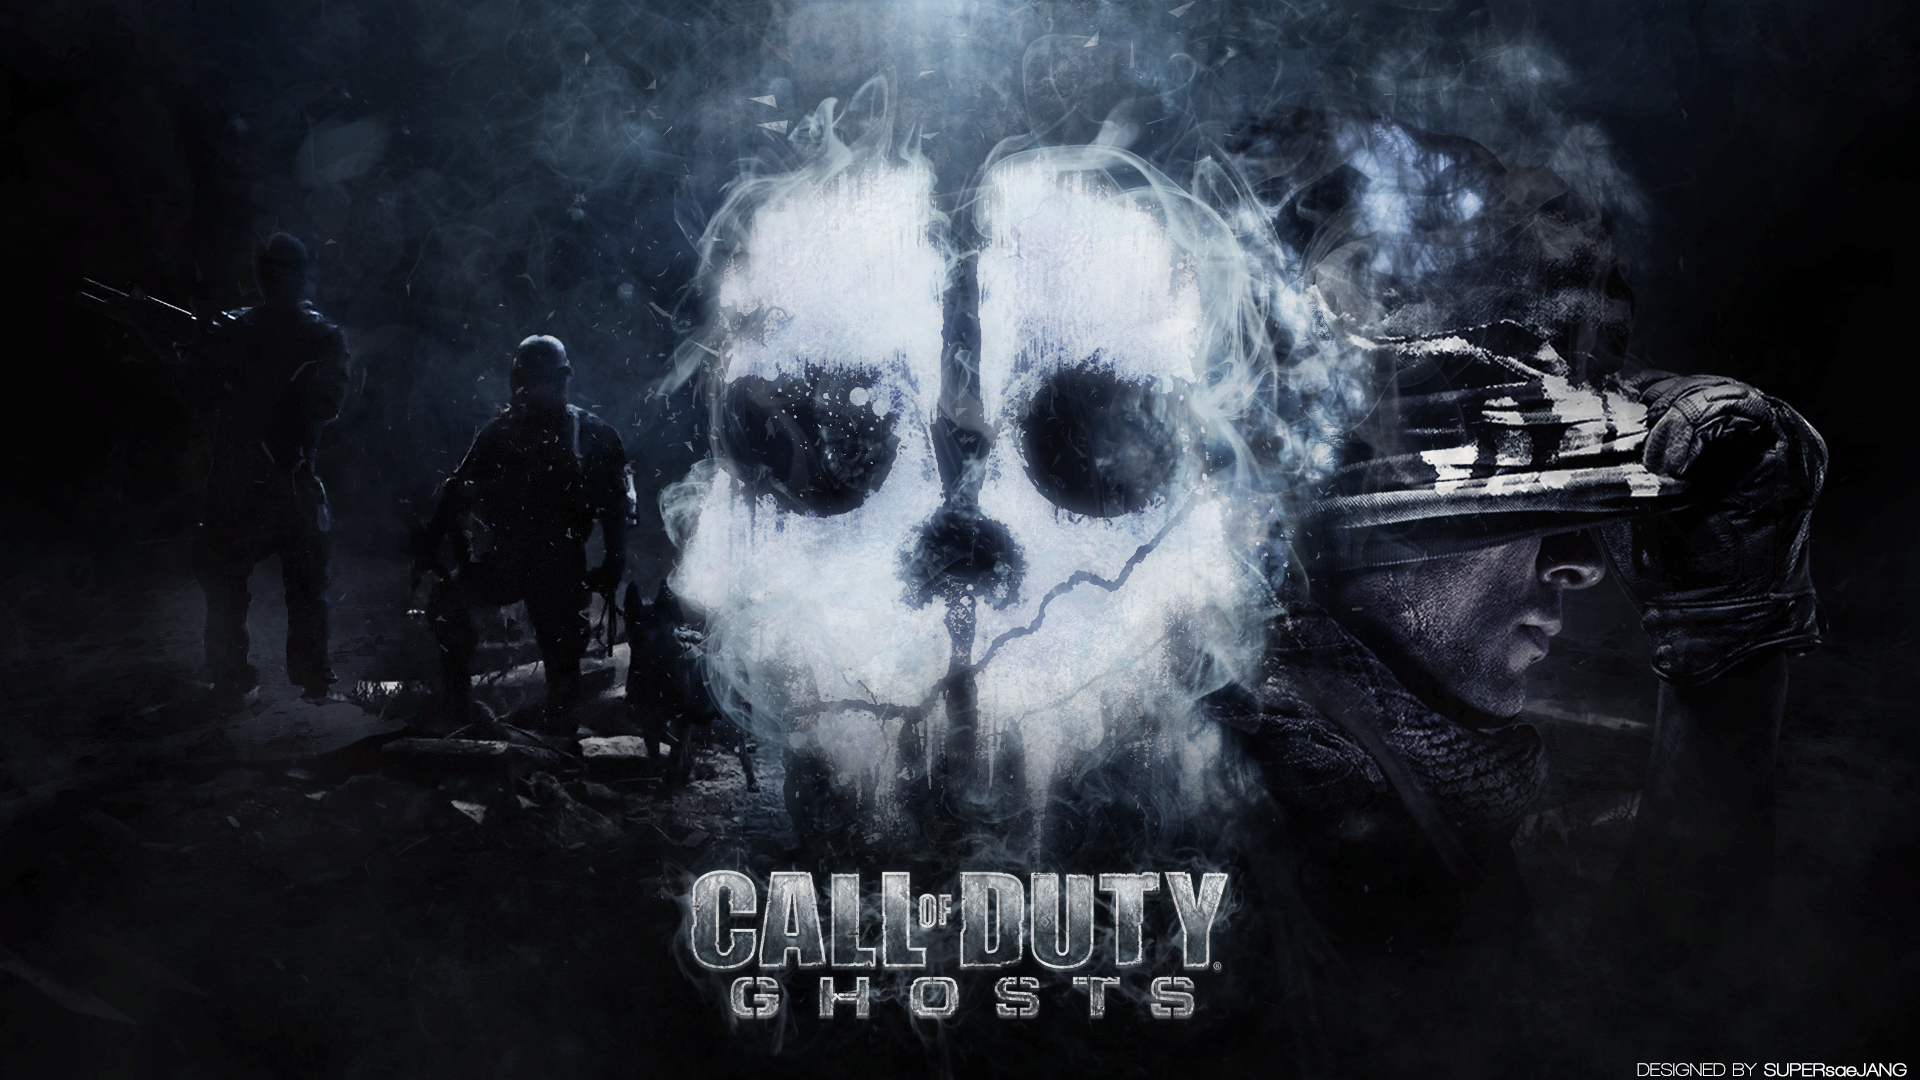 PS3 Themes » Call of Duty: Ghosts Dynamic Theme | All Wallpapers